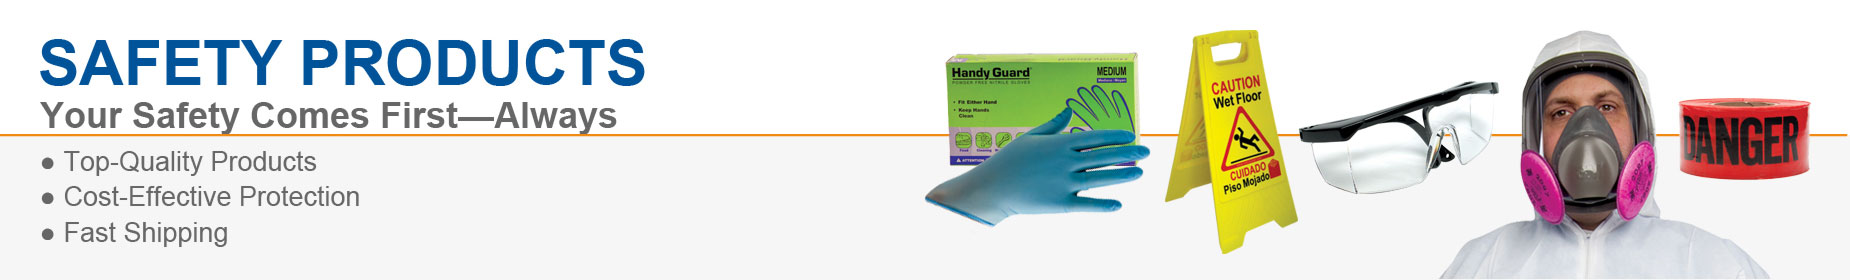 Safety Products at Jon-Don